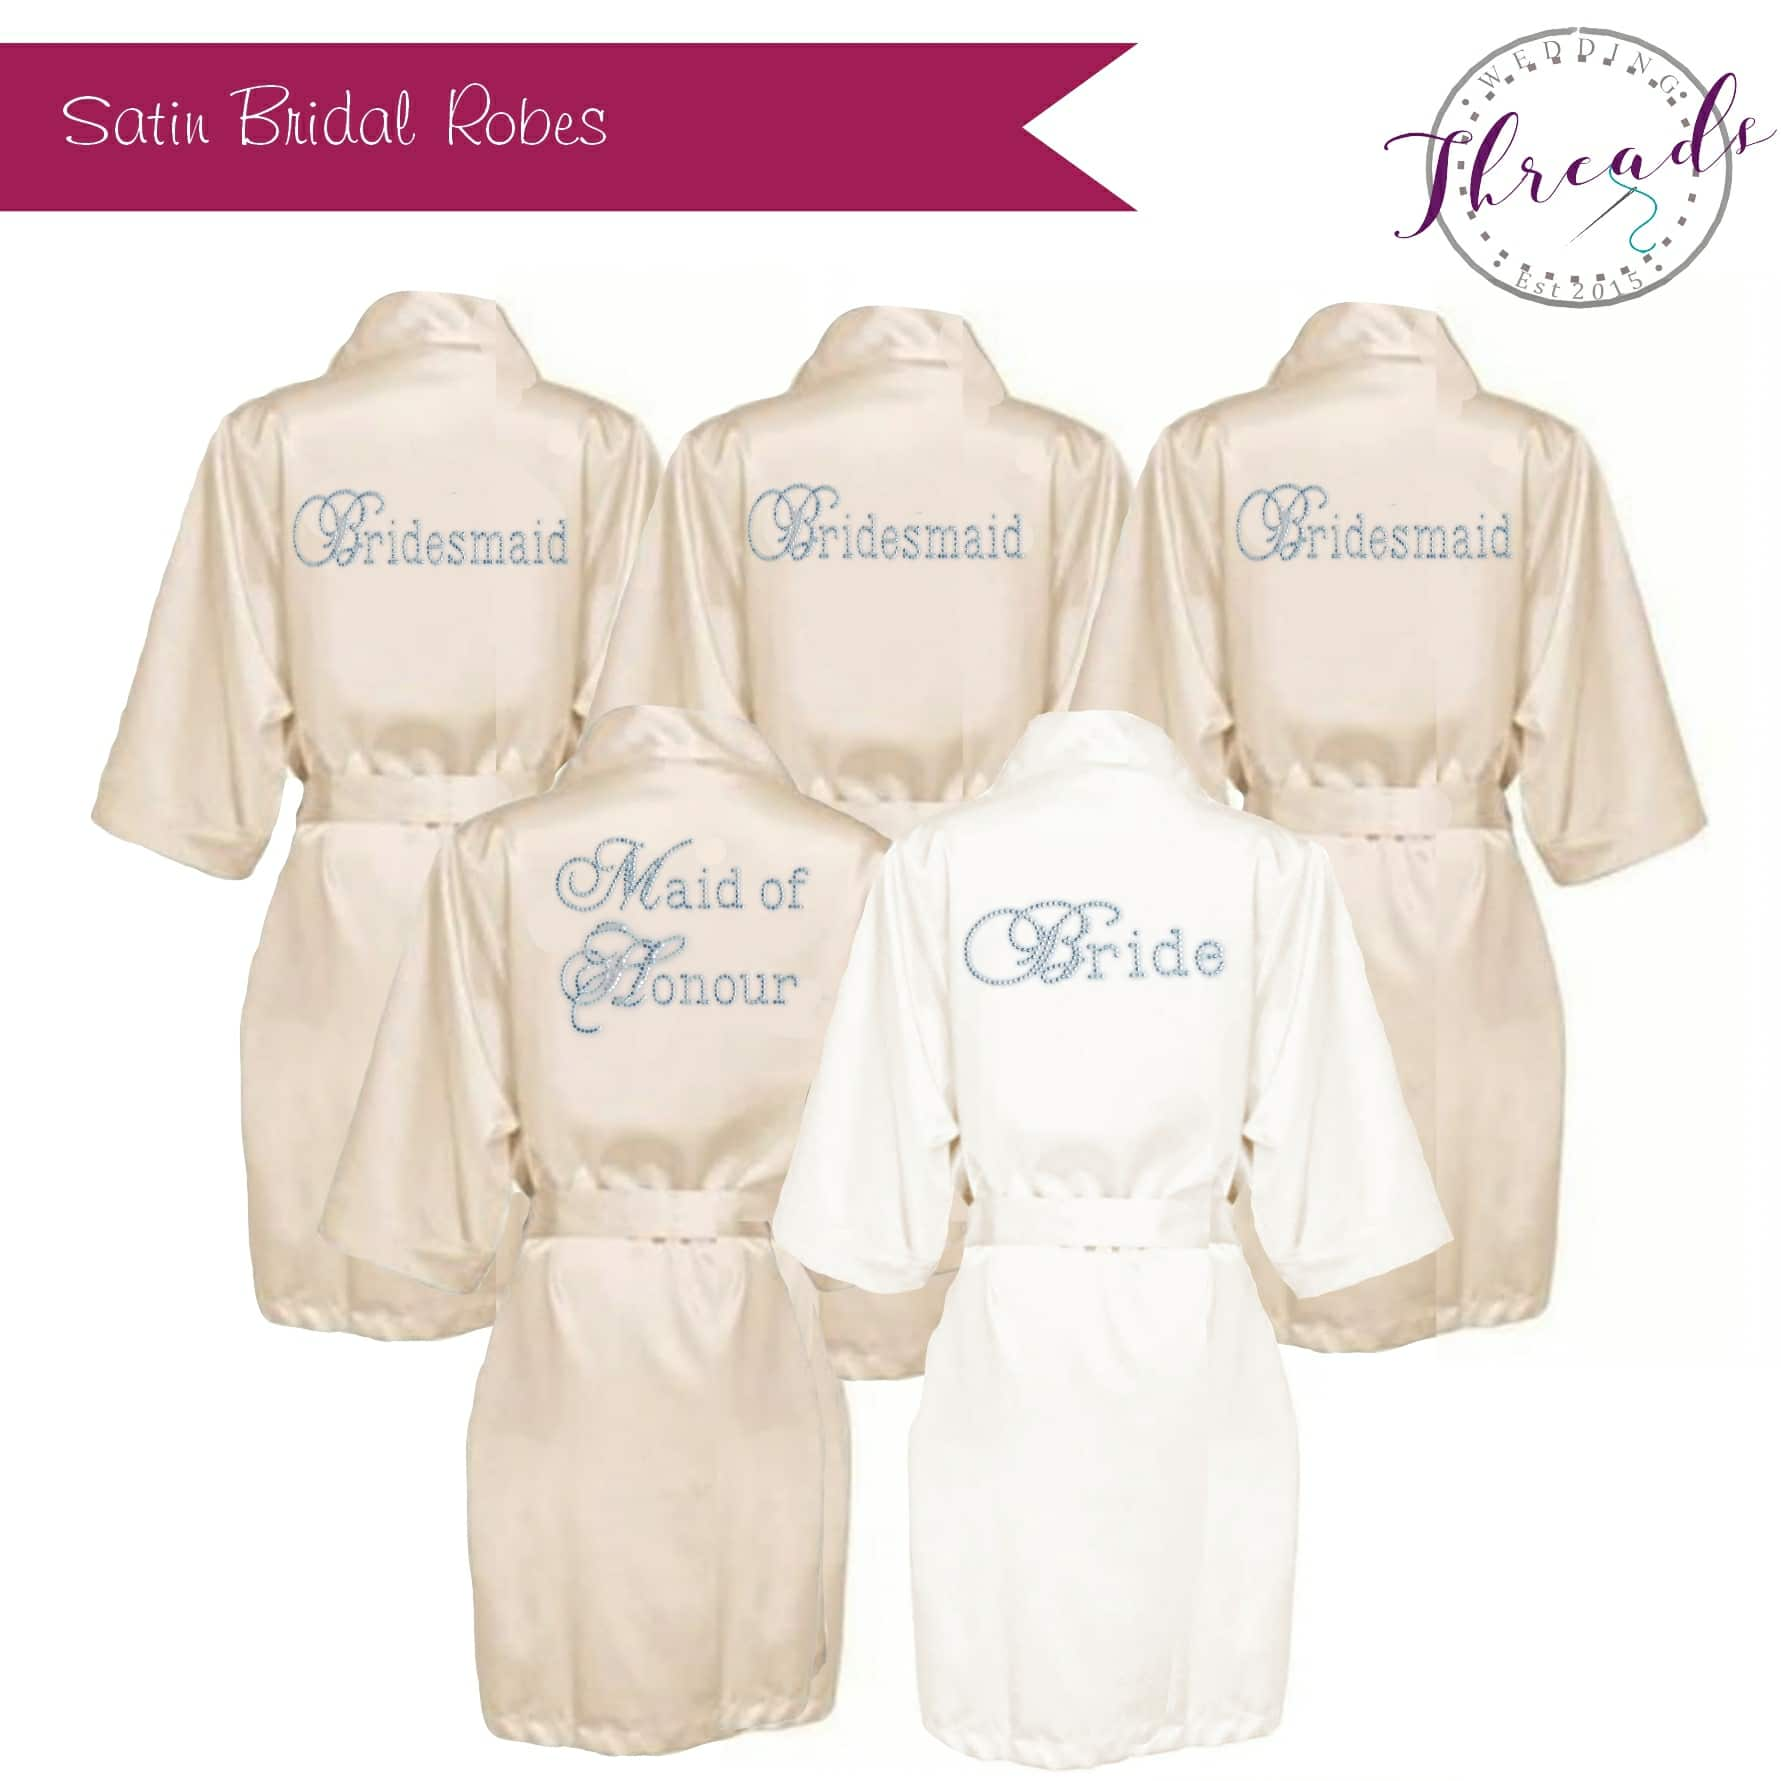 668d6855c7 satin dressing gowns · satin robe colour chart. personalised satin bridal  robes